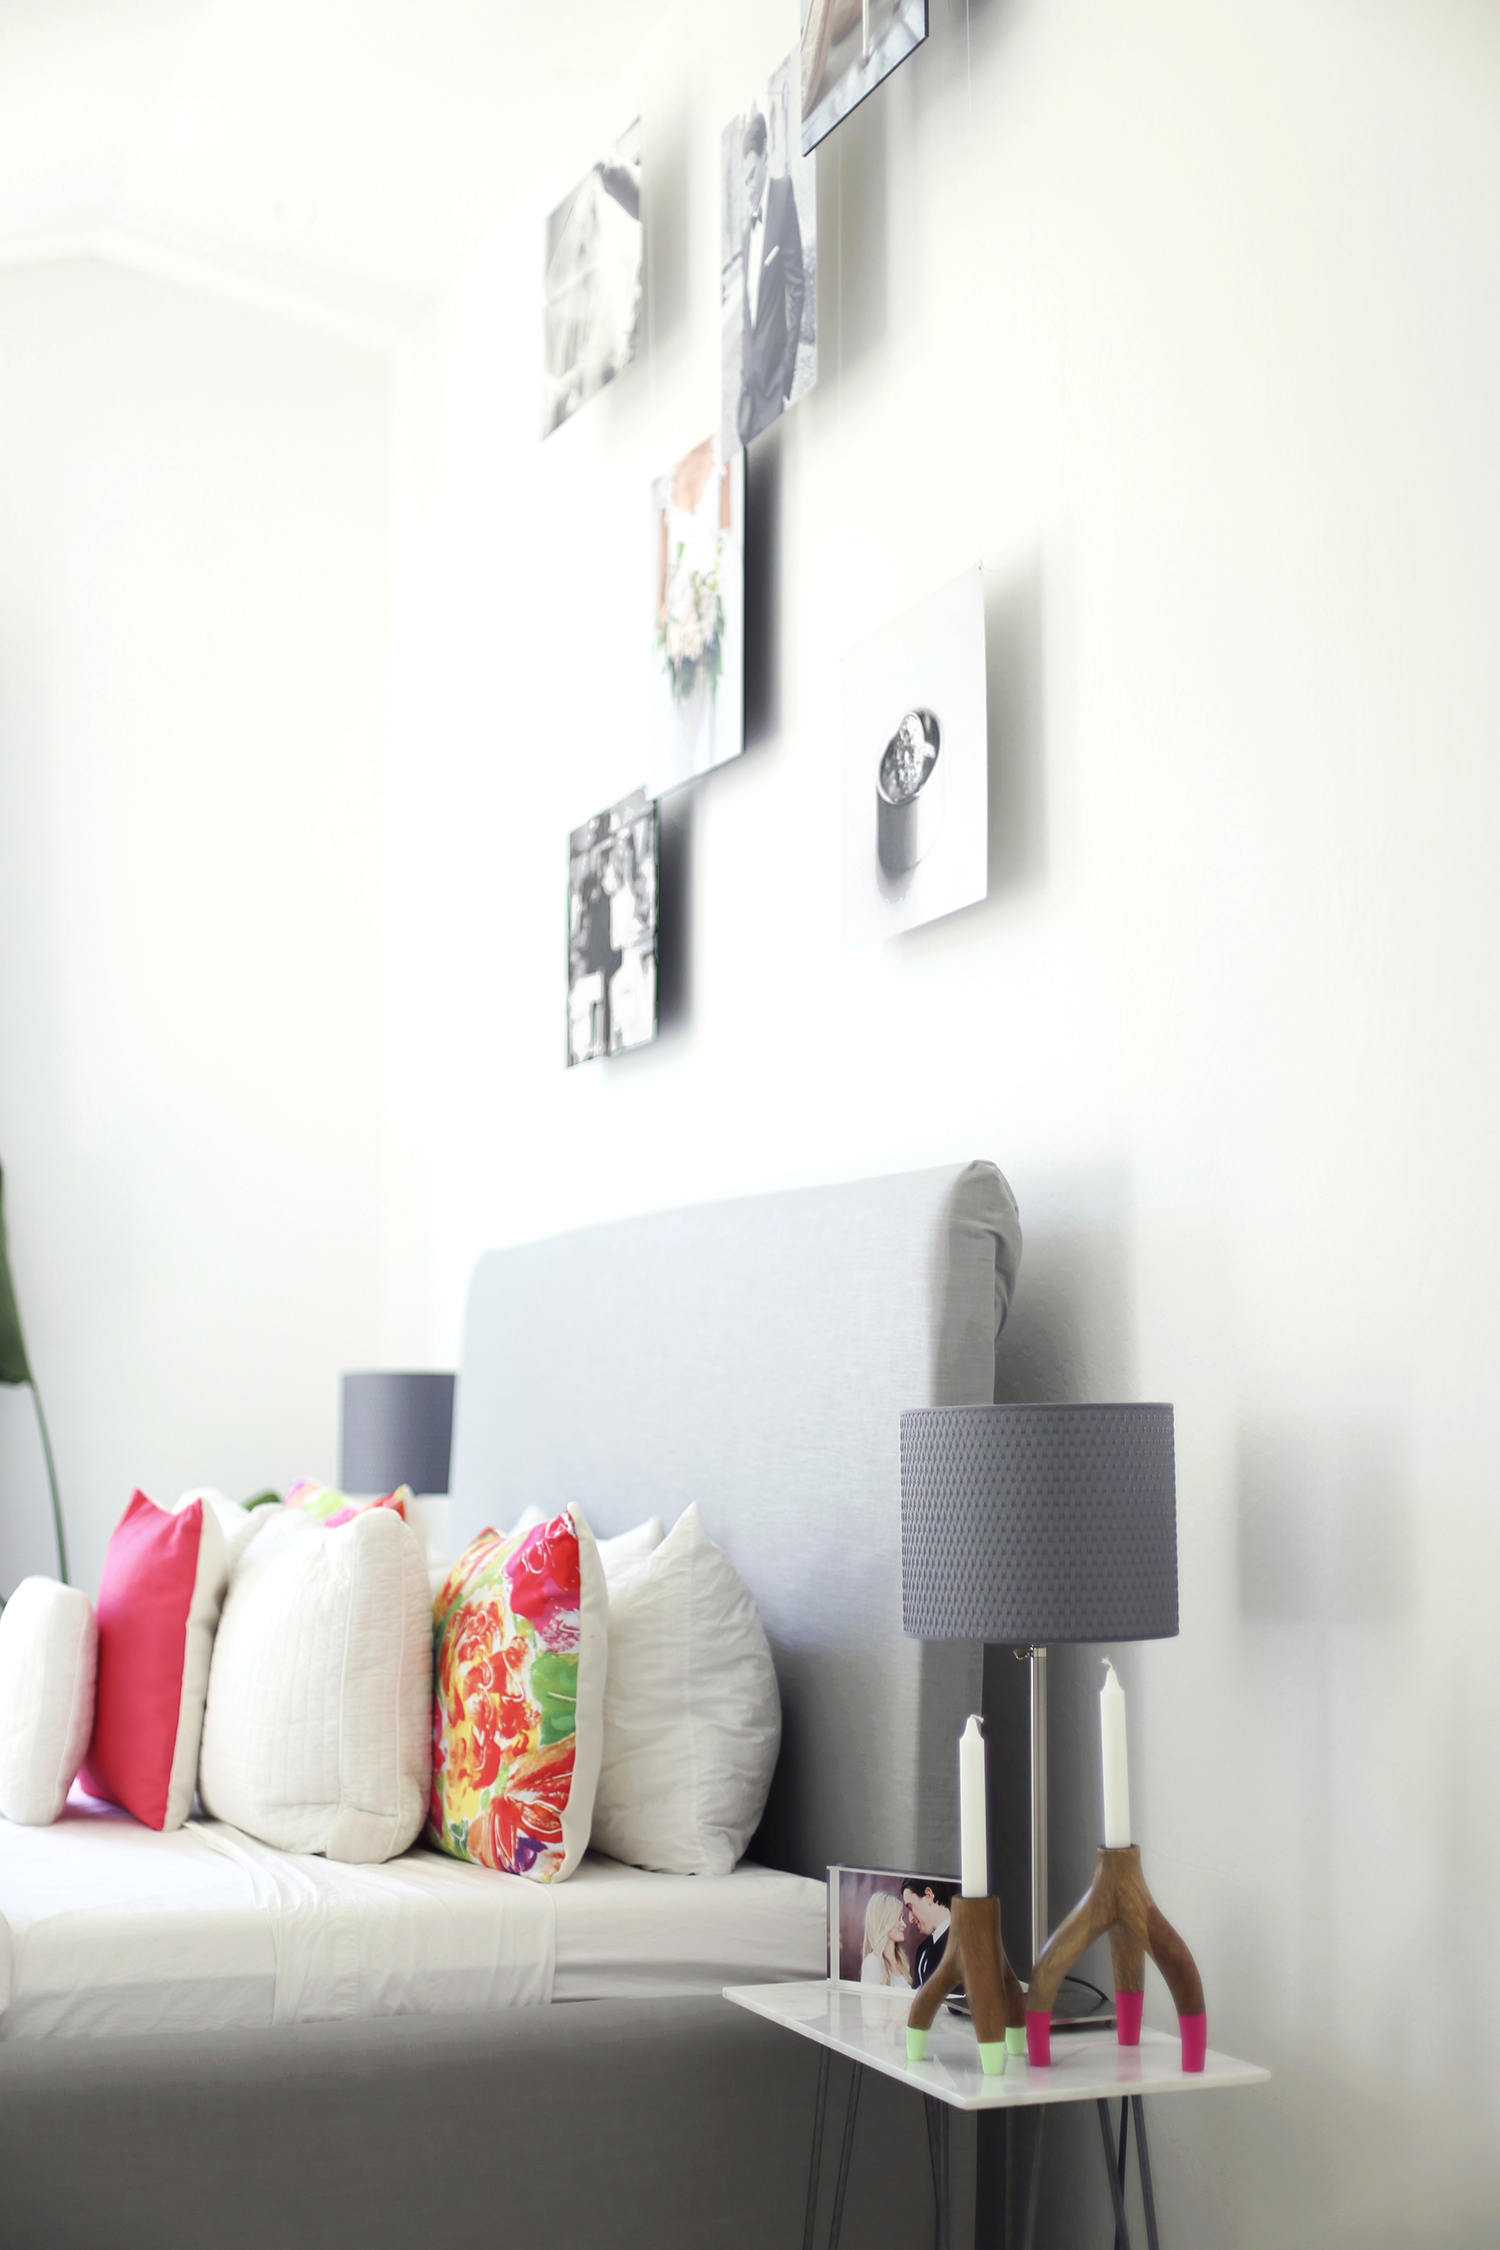 TinyPrints home products